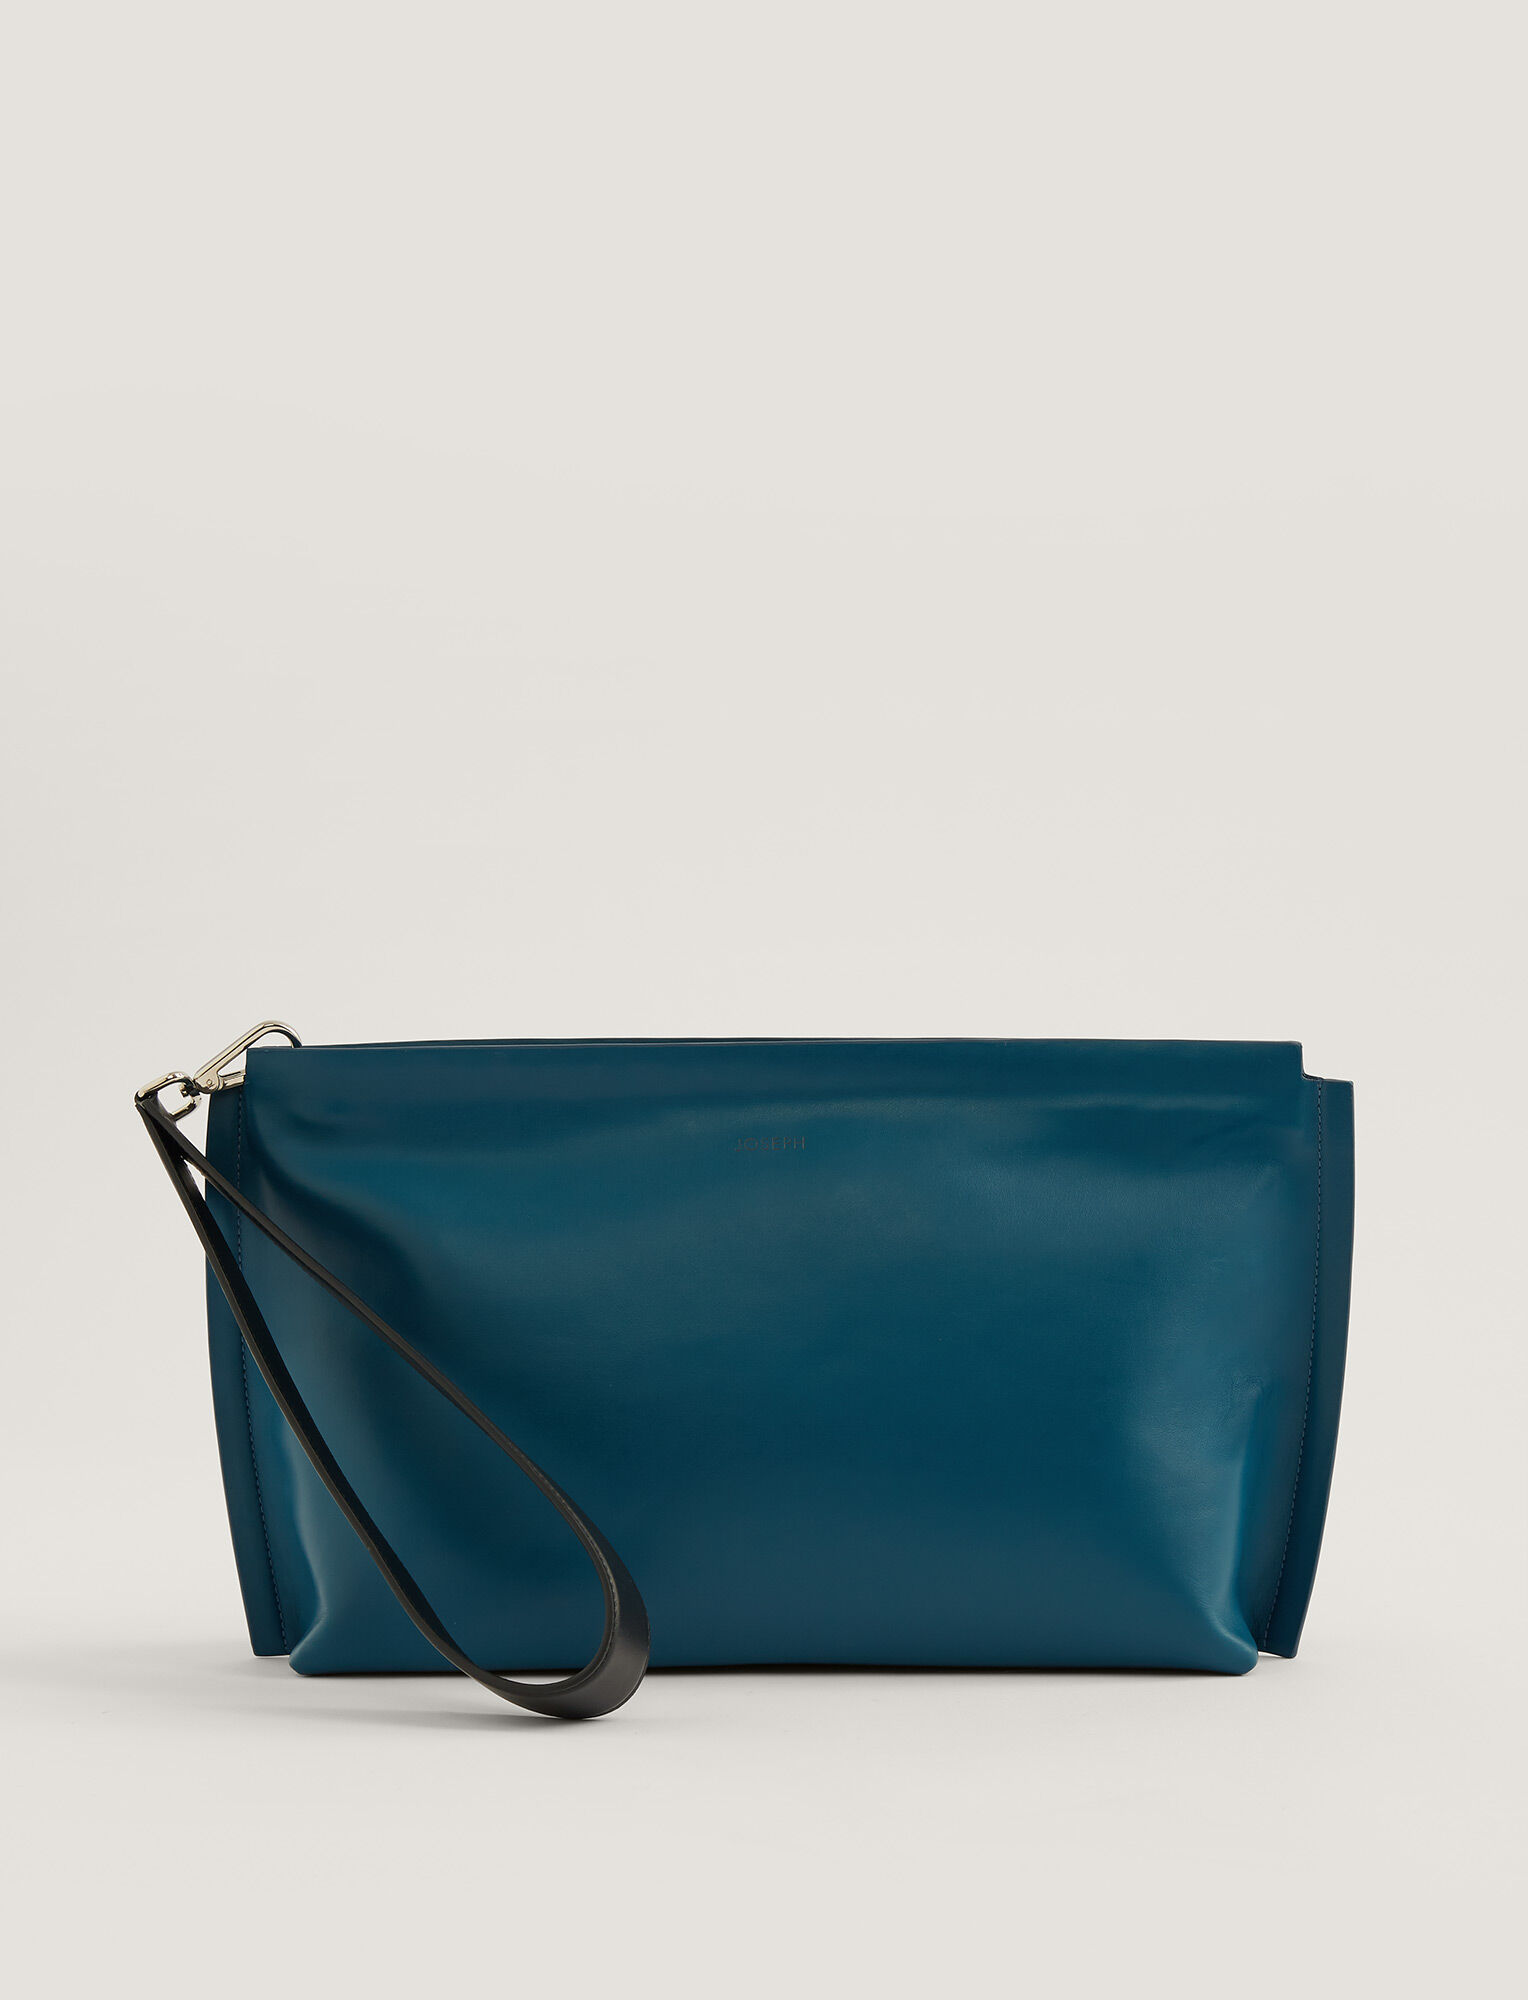 Joseph, Leather Clutch, in BLUE STEEL